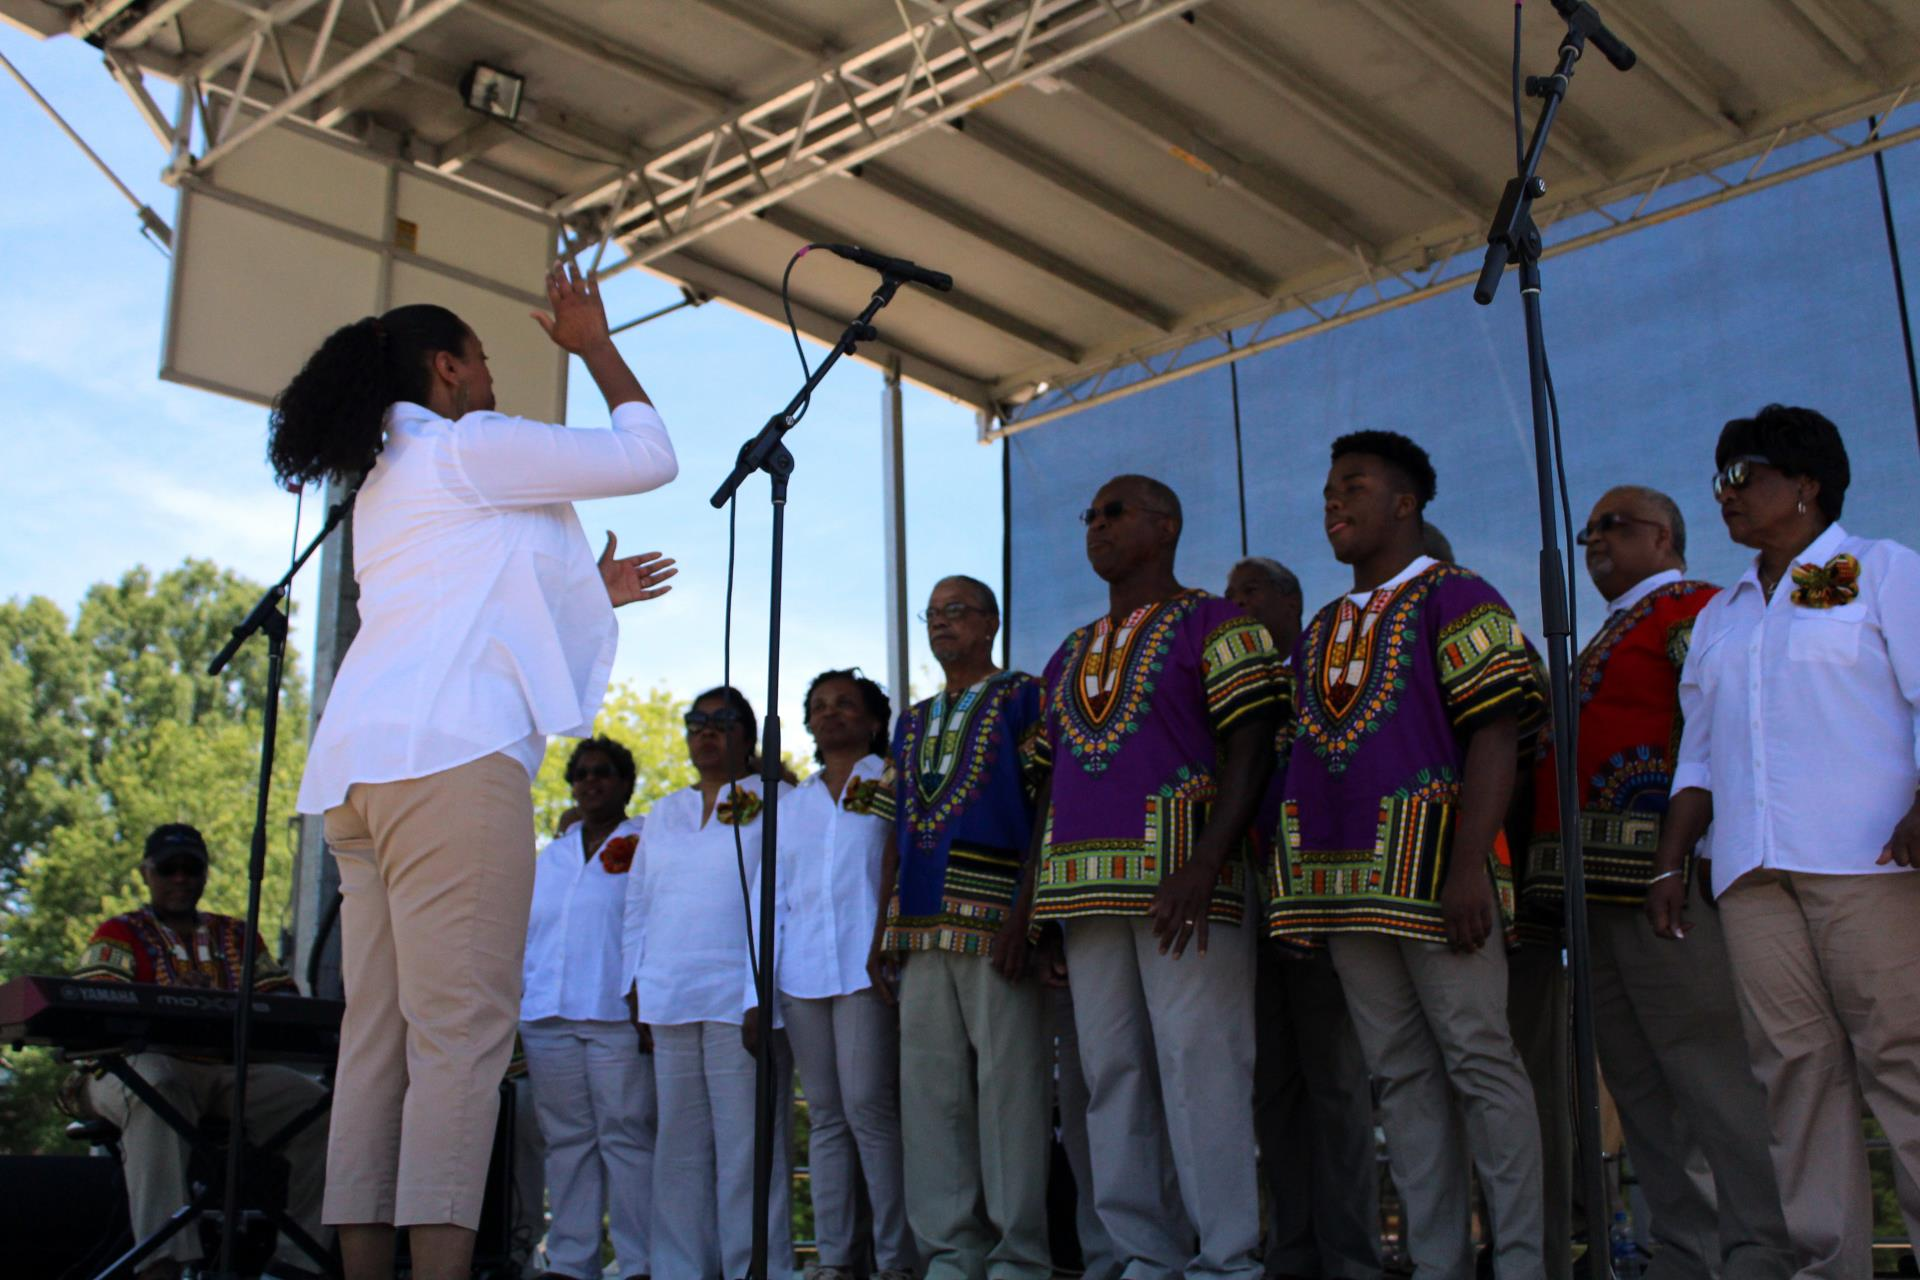 Singers performing at 2019 Cary Juneteenth Celebration